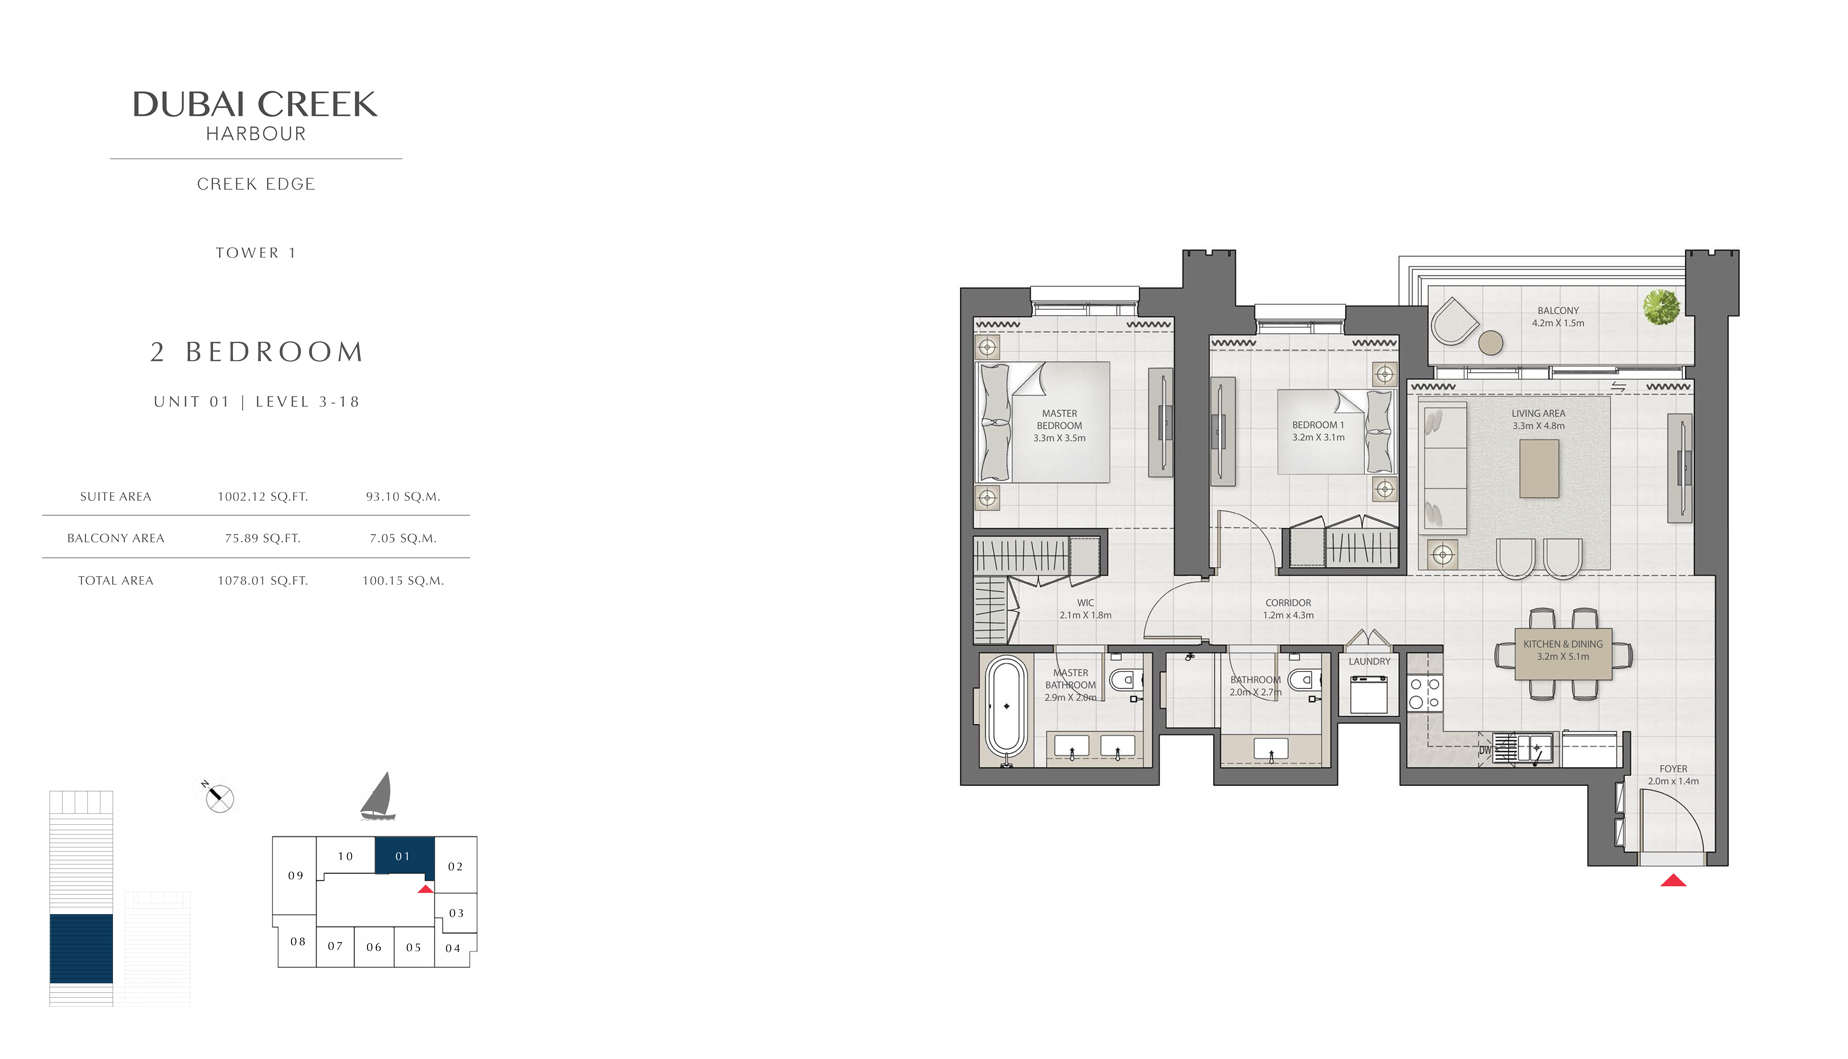 2 Bedroom Tower 1 Unit 01 Level 3-18  Size 1078 sq.ft